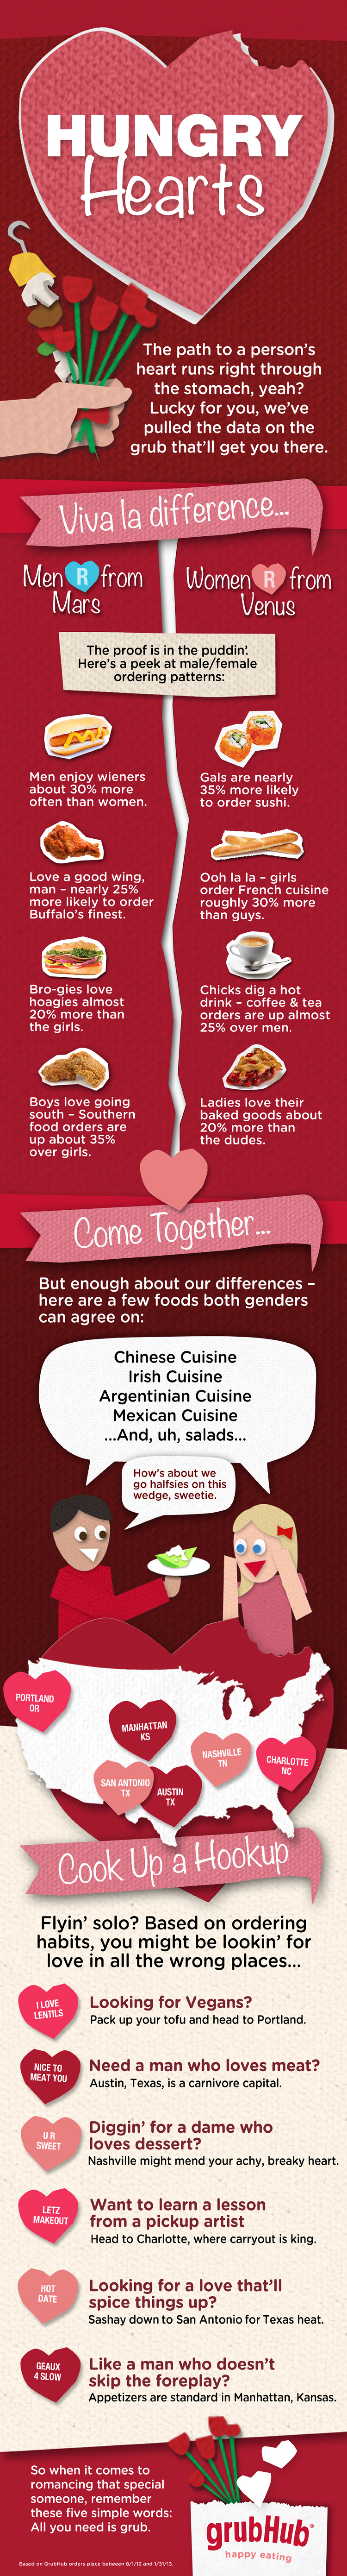 Hungry Hearts: Gender Differences in Food Orders Infographic